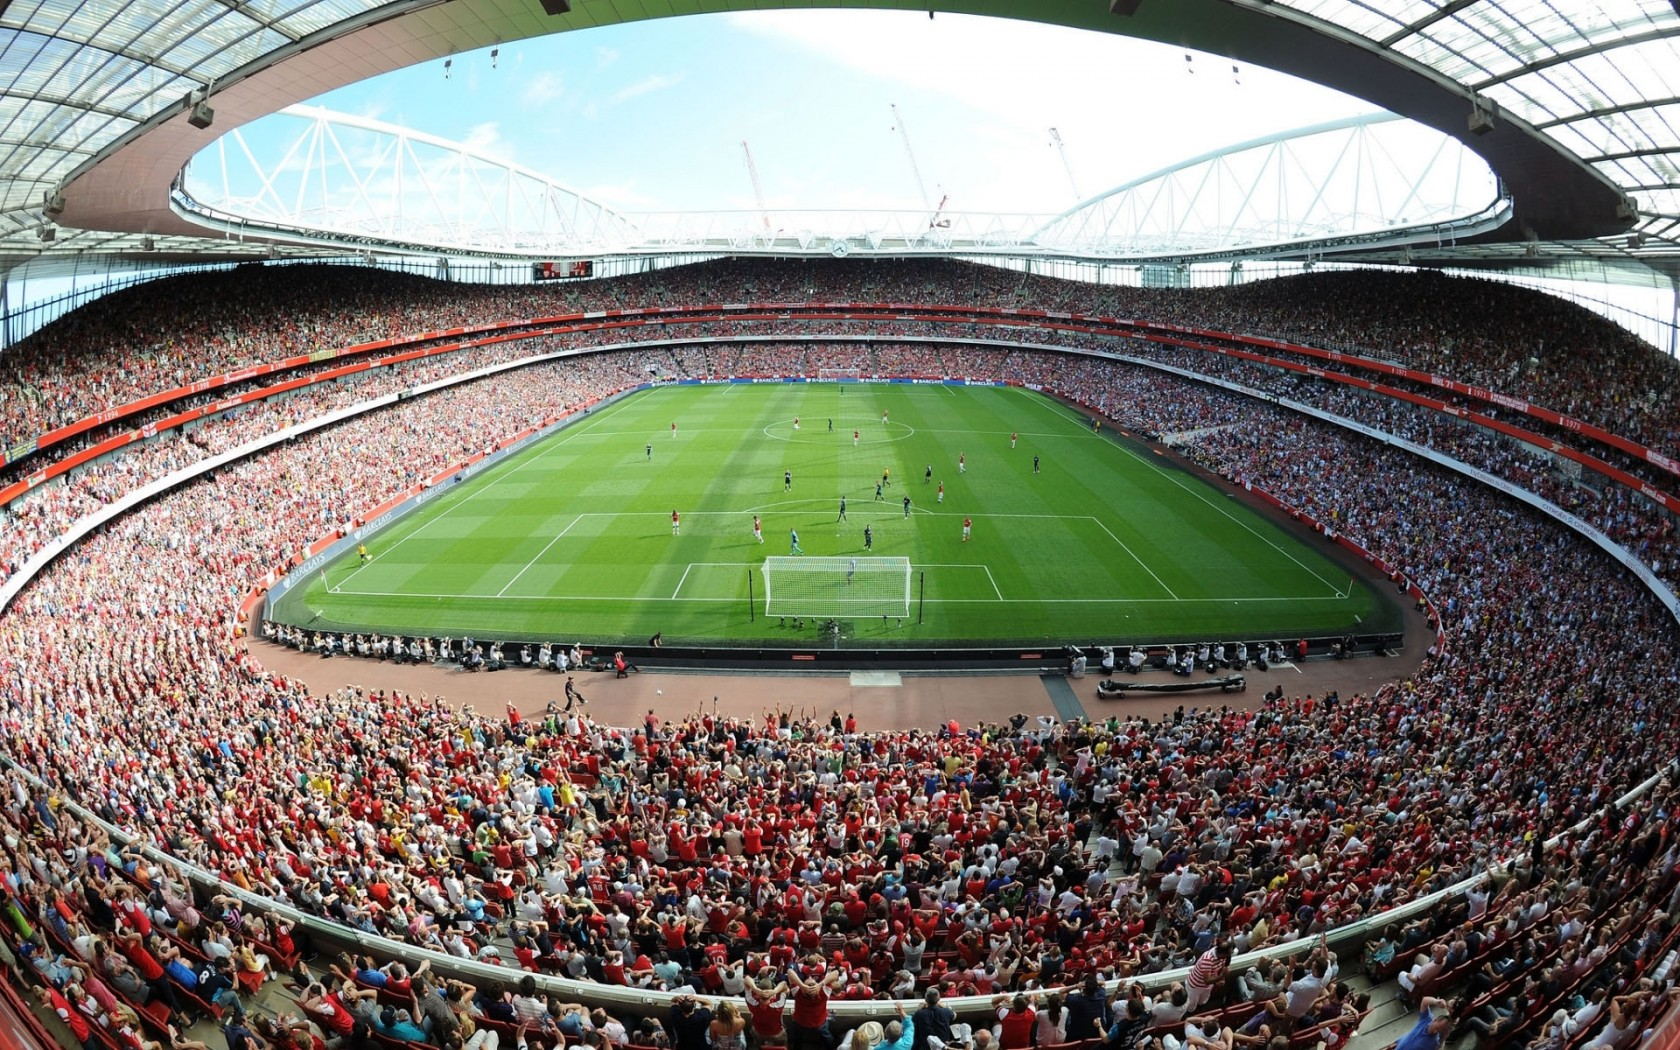 Emirates-Stadium-Emirates-Stadium-Arsenal-Football-Club-Arsenal-1050x1680